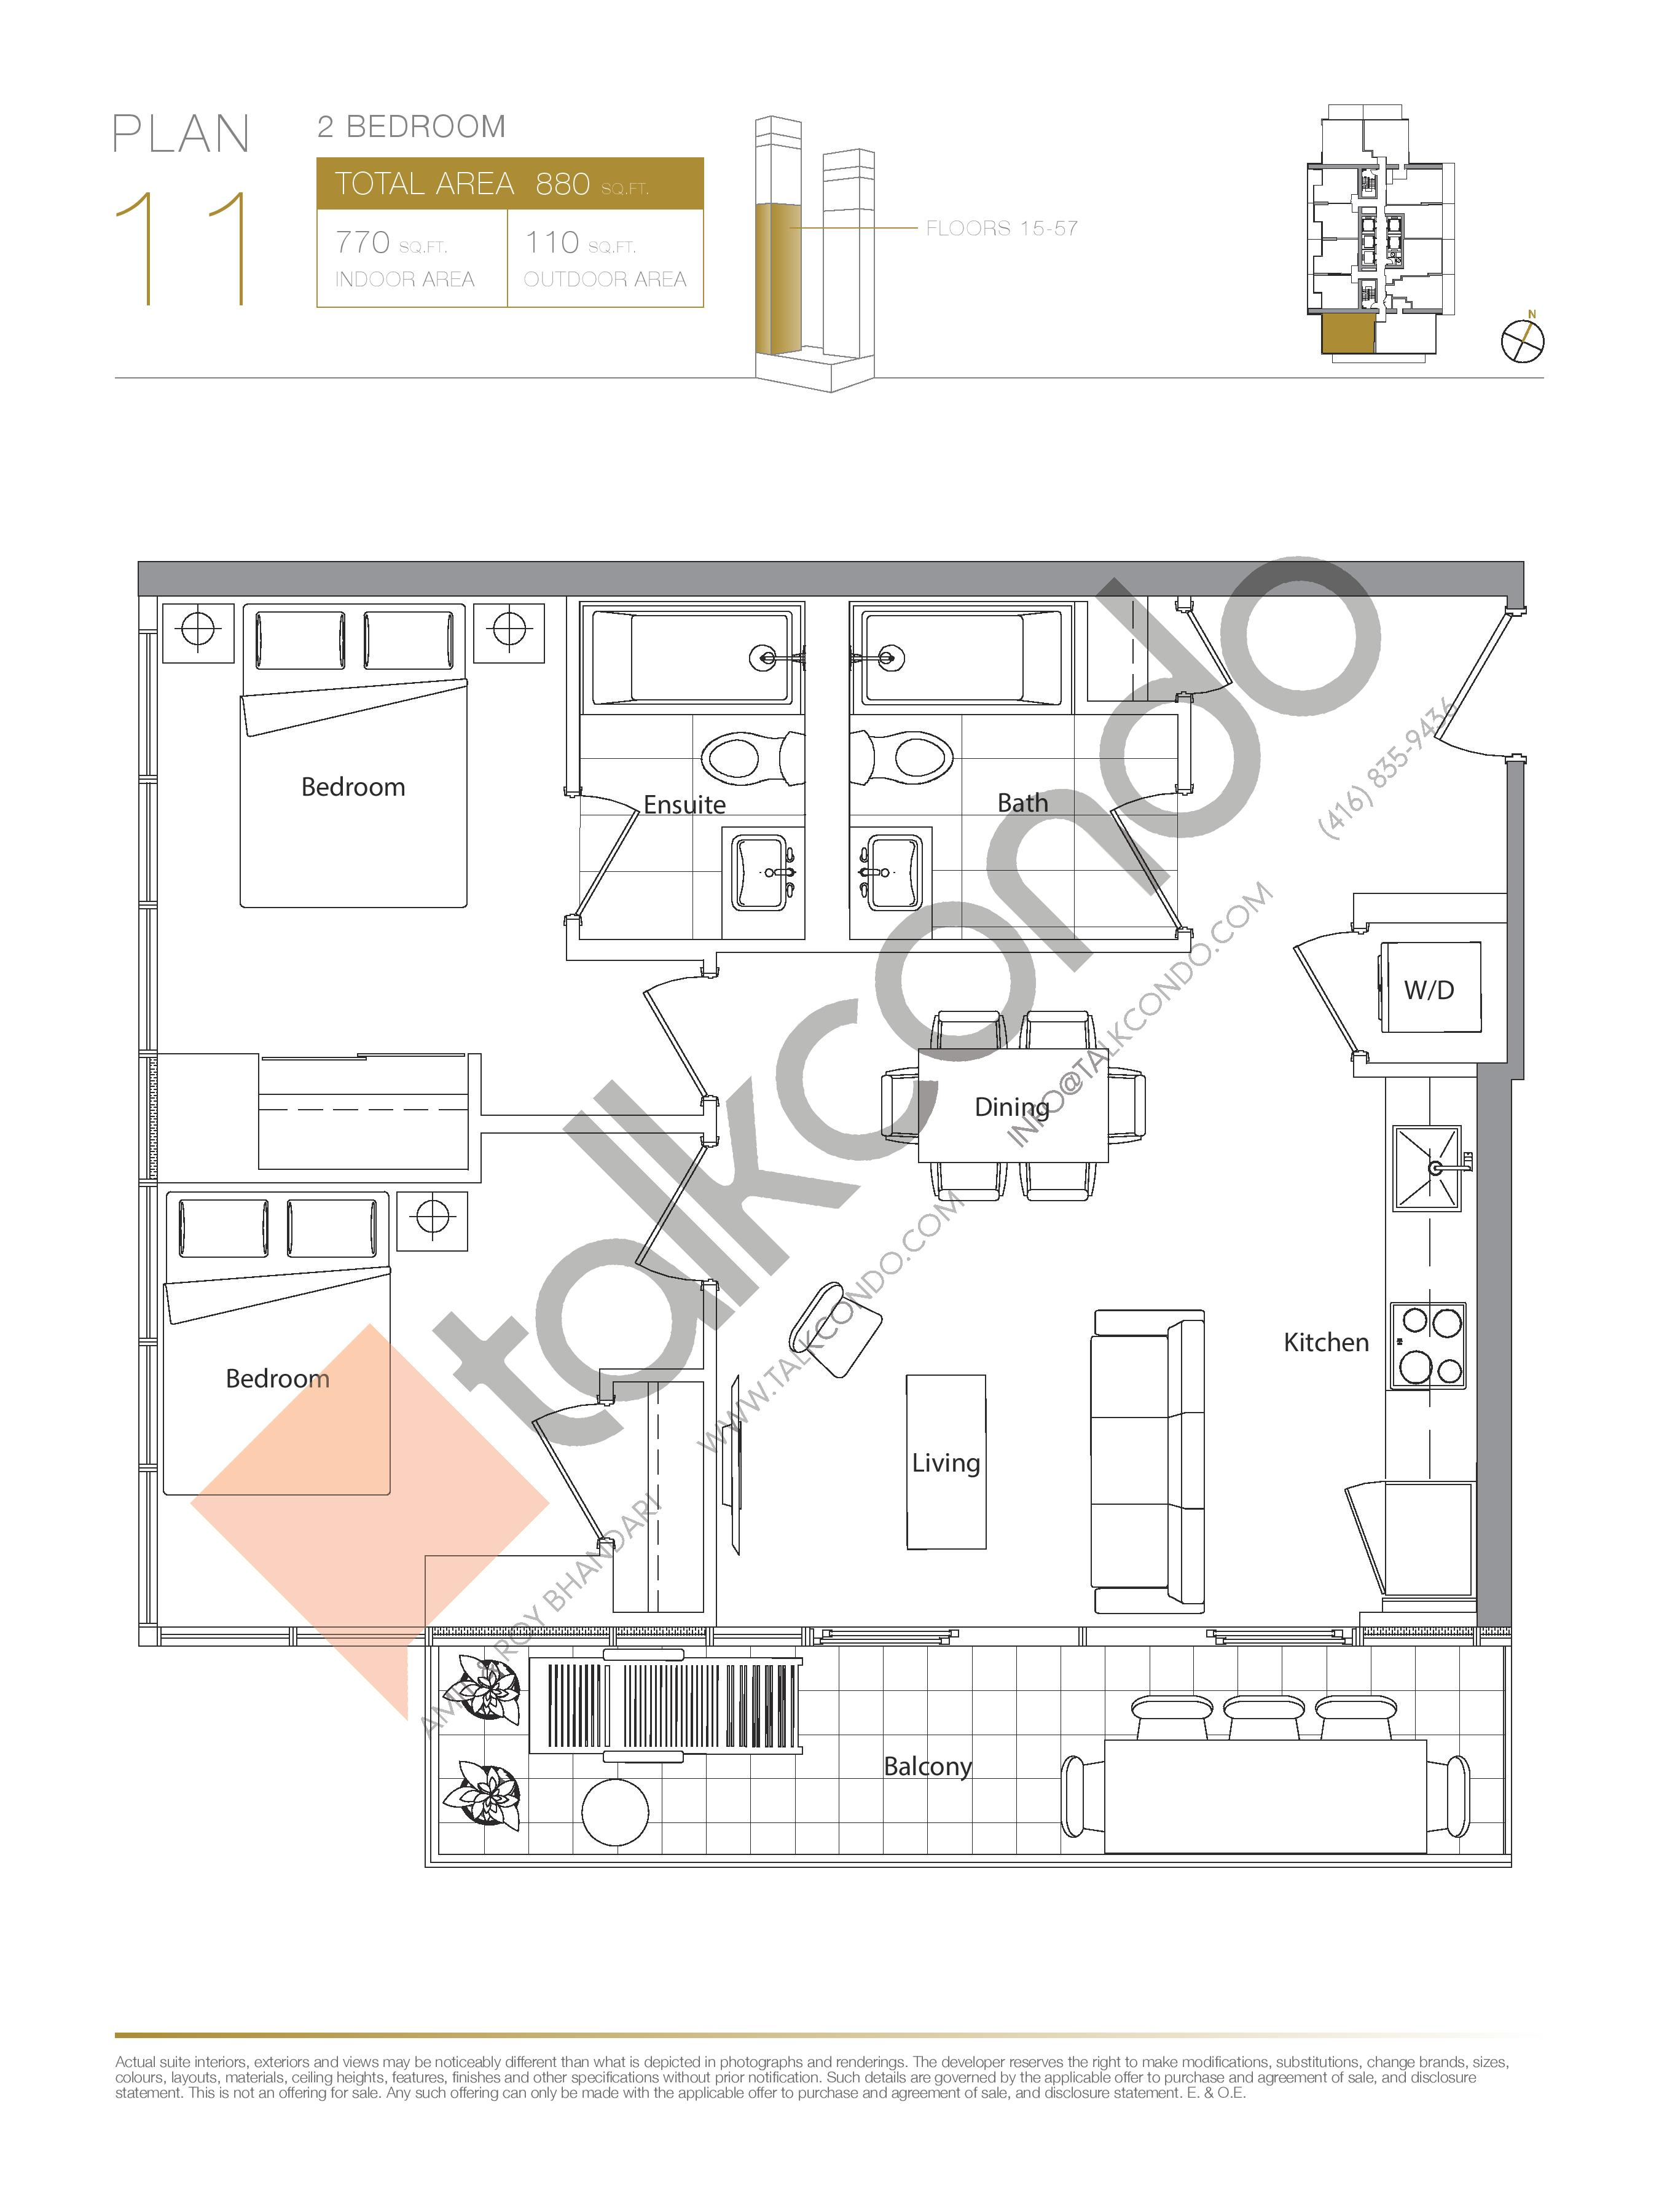 Plan 11 (New Release) Lower Floor Plan at Concord Canada House Condos - 770 sq.ft